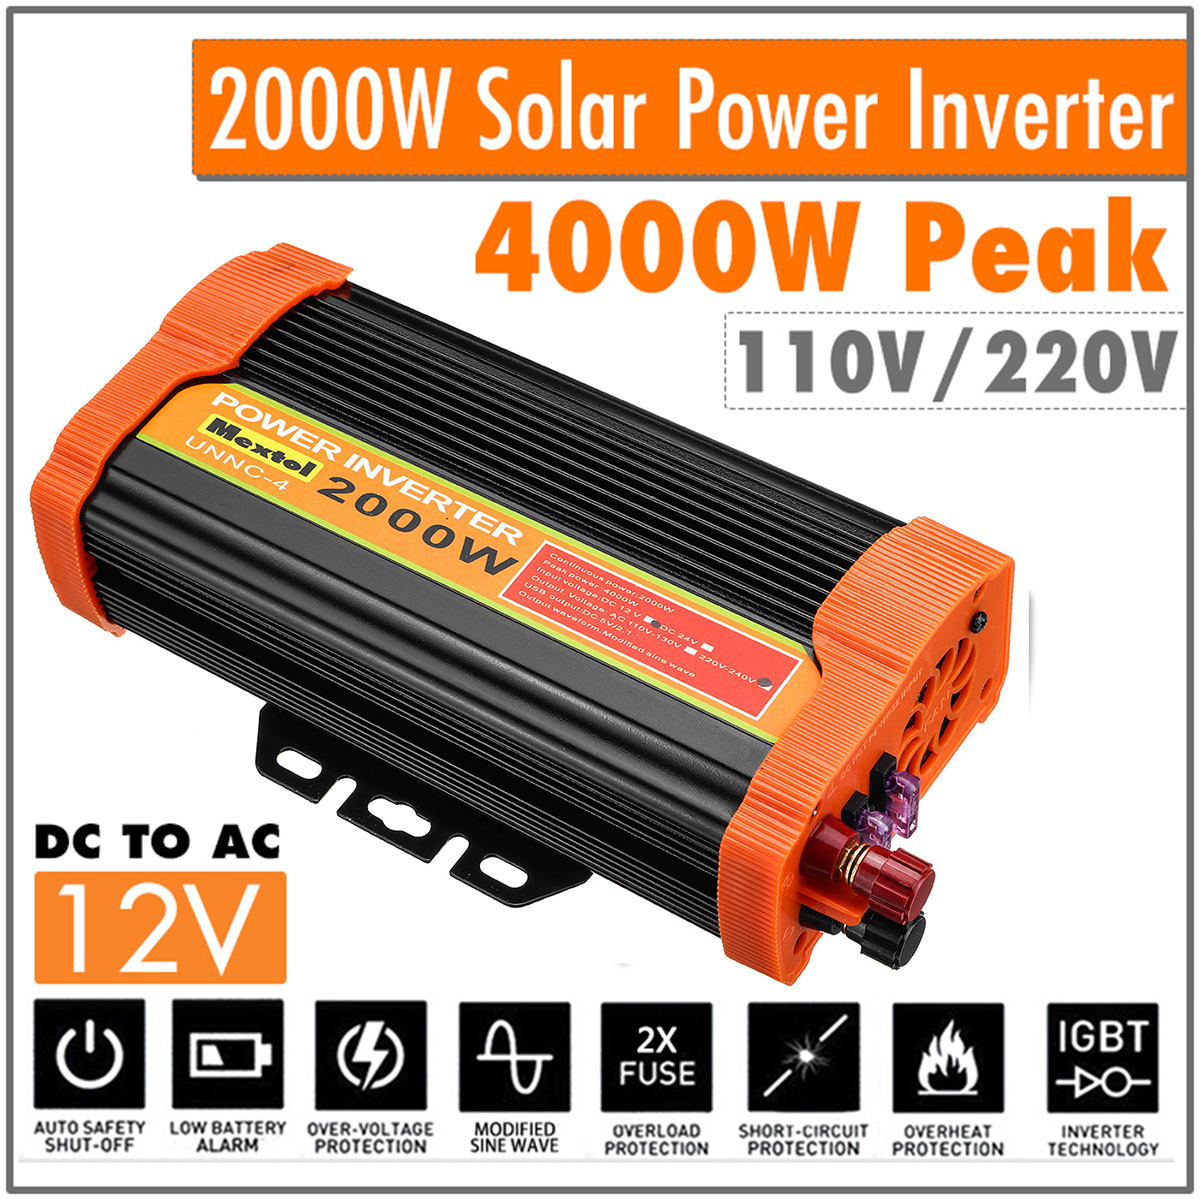 Max 4000 Watt Power Inverter <font><b>12</b></font> <font><b>V</b></font> zu <font><b>220</b></font> Volt Dual USB Auto <font><b>Adapter</b></font> Ladung Konverter Modifizierte Sinus Welle USB transformator 2000W image